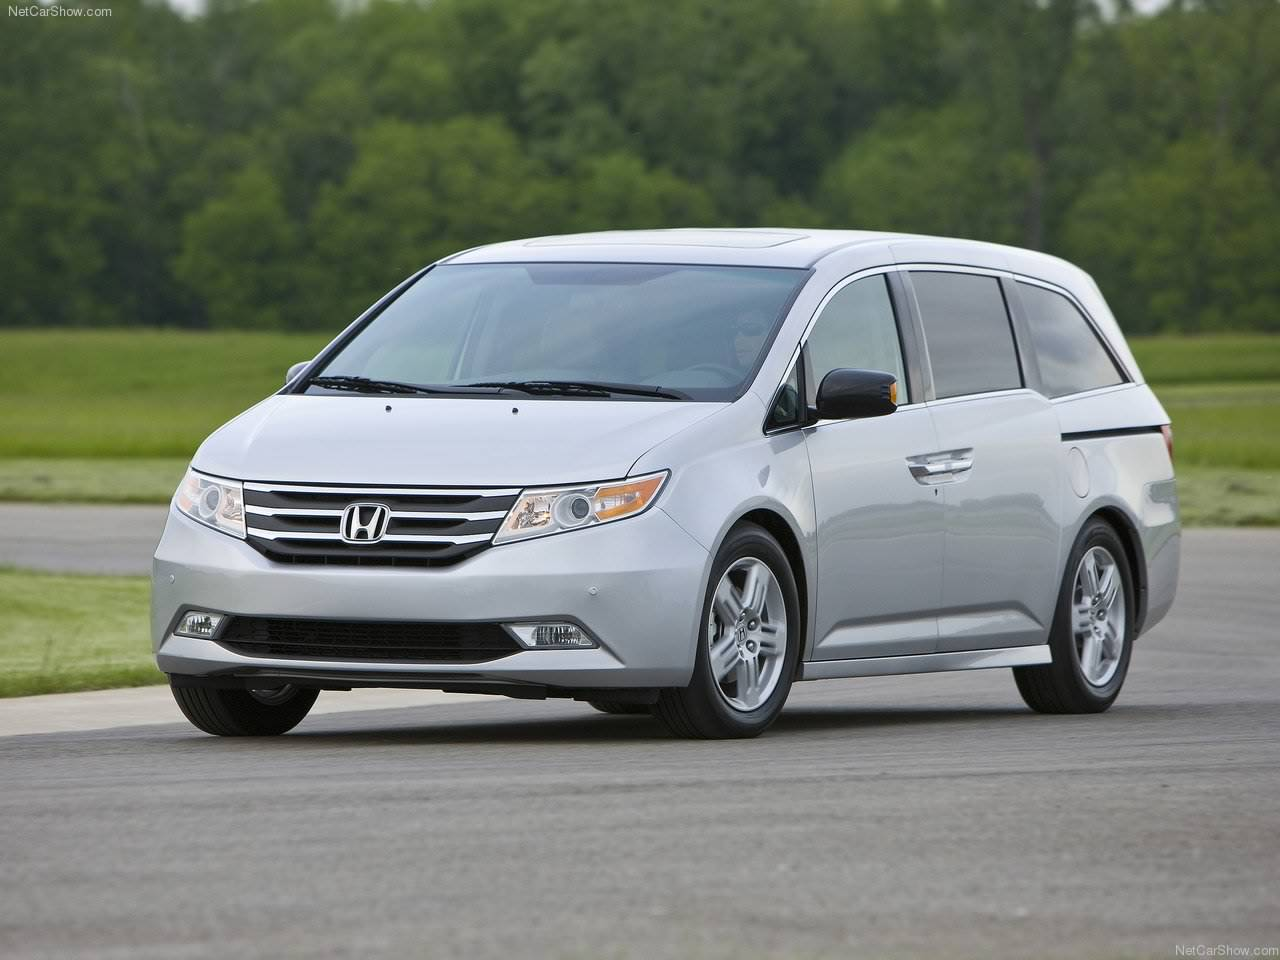 2011 honda odyssey news cars news review. Black Bedroom Furniture Sets. Home Design Ideas